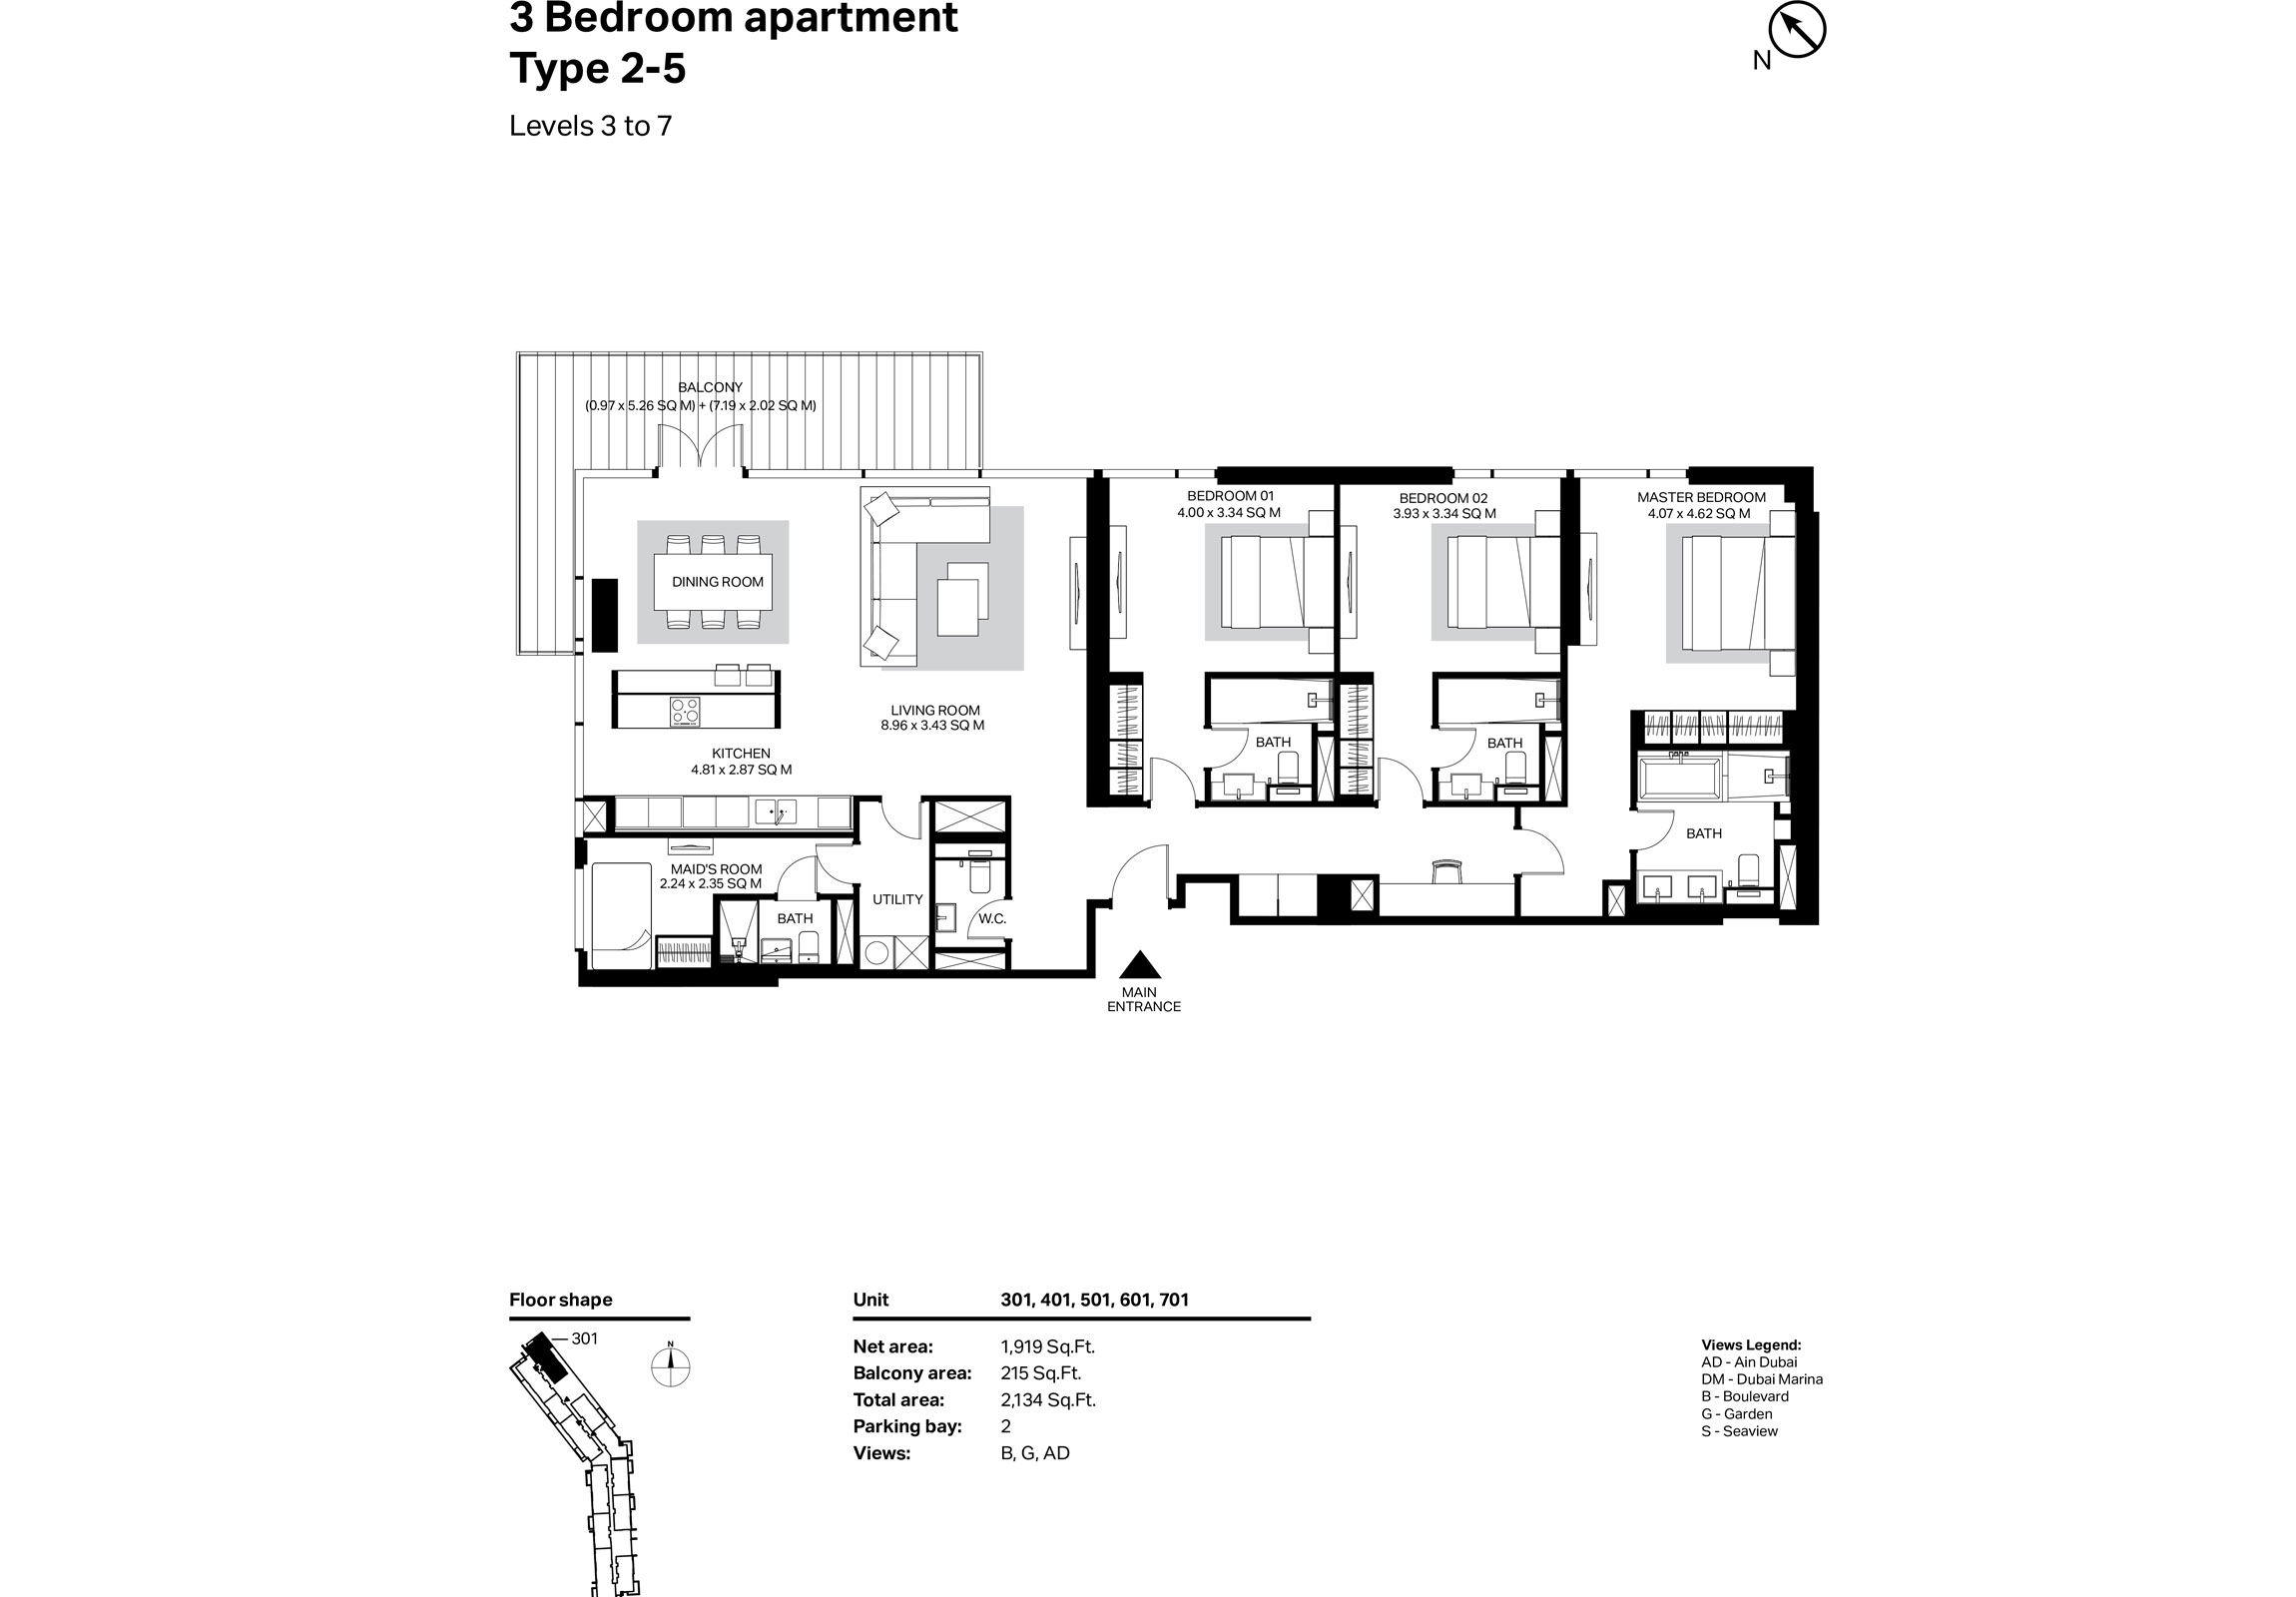 Building 2 - 3 Bedroom Type 2-5 Level 3 To 7 Size 2134    sq. ft.